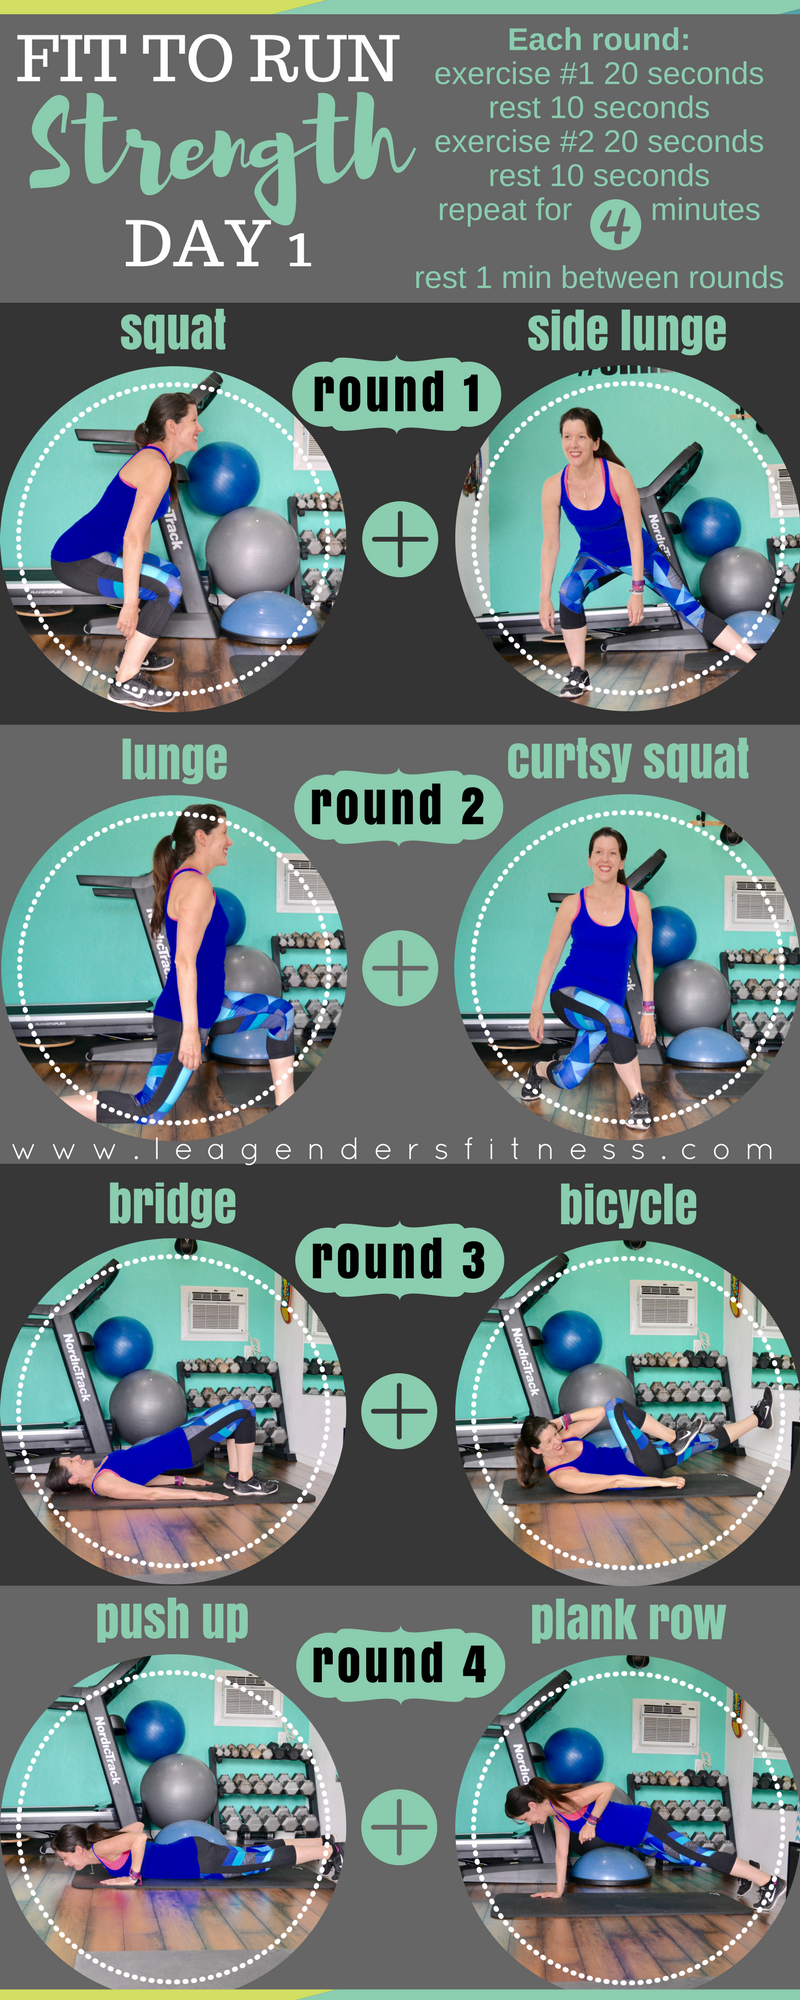 Fit to run strength training for runners - download a printable version of this workout. Save to your favorite fitness Pinterest board